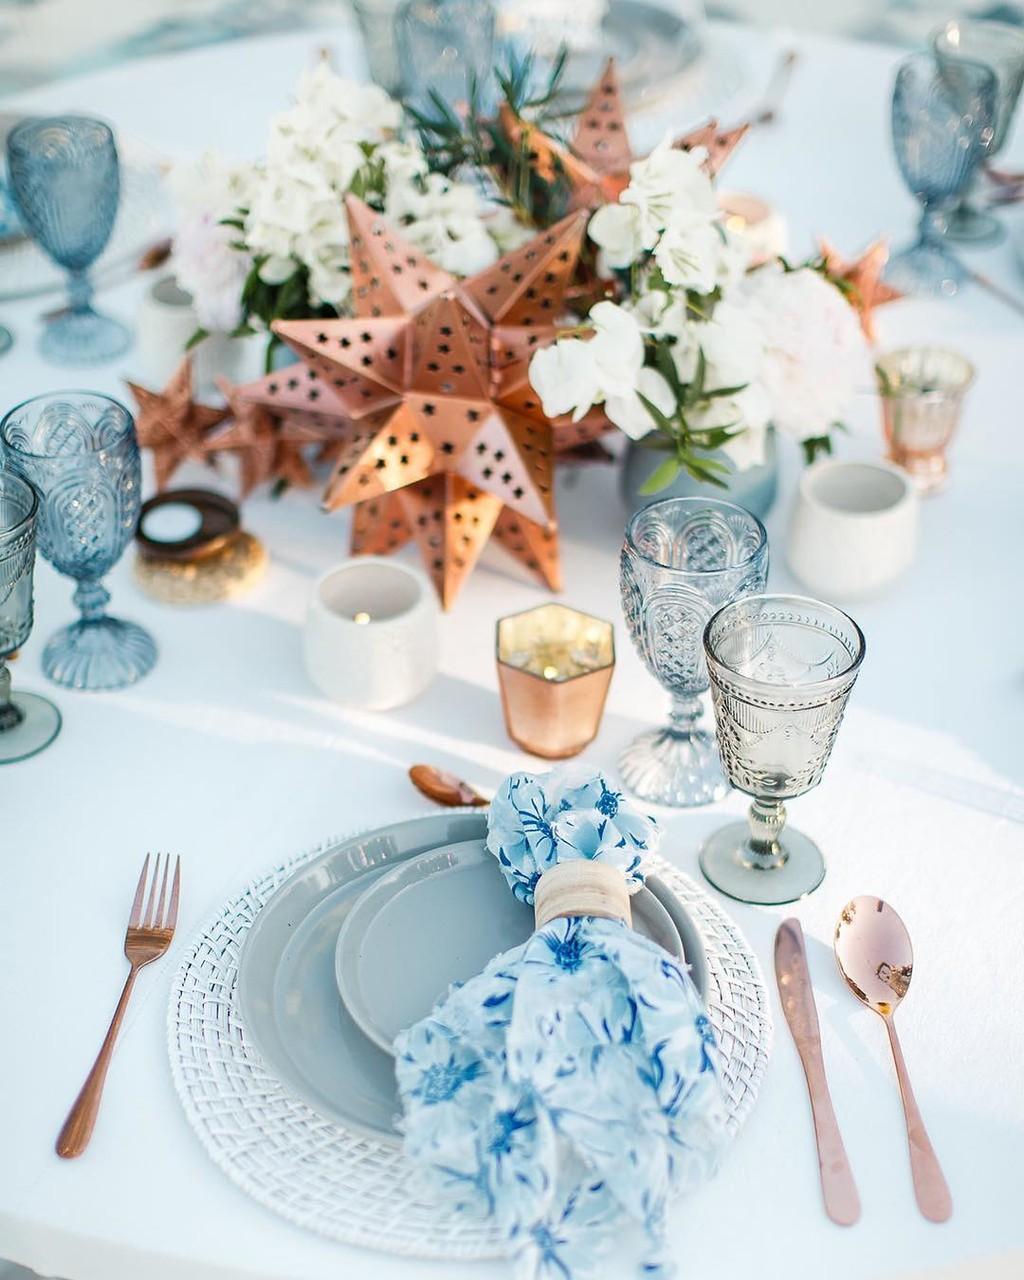 Love all the details about this summer inspiration table decor